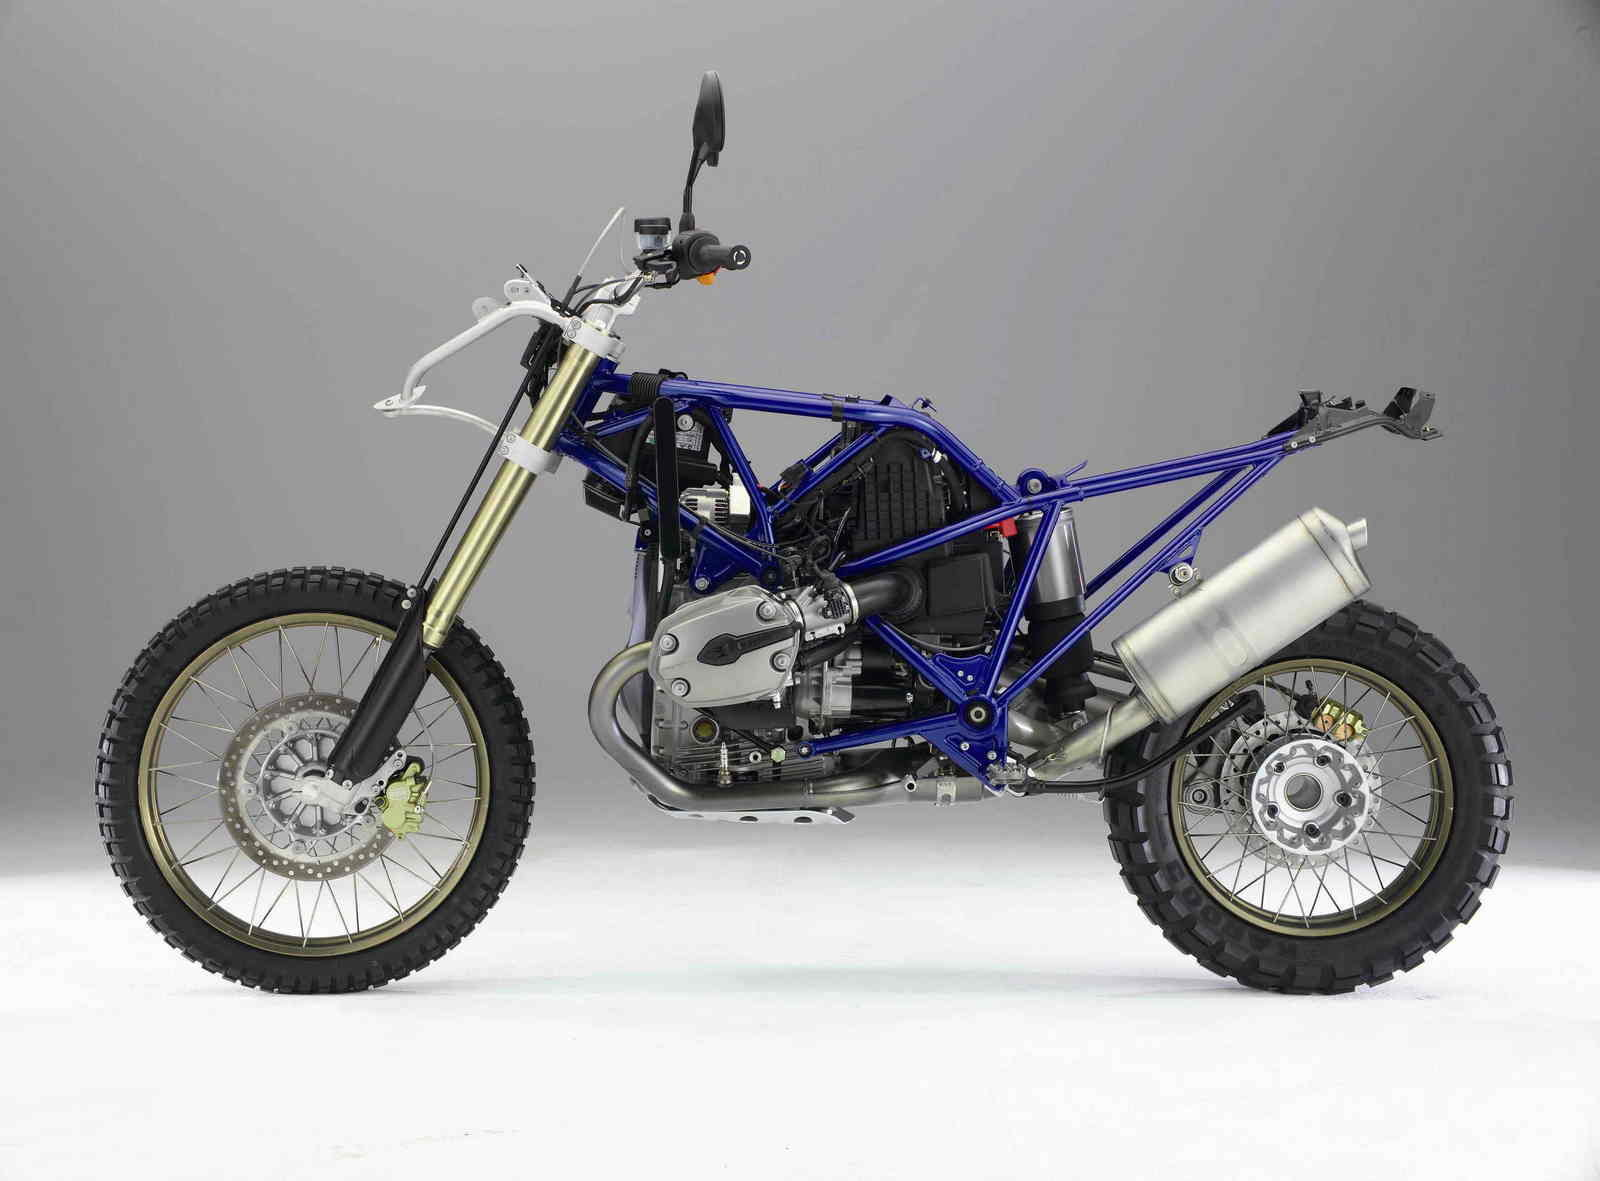 2006 bmw hp2 enduro related keywords 2006 bmw hp2 enduro long tail keywords keywordsking. Black Bedroom Furniture Sets. Home Design Ideas